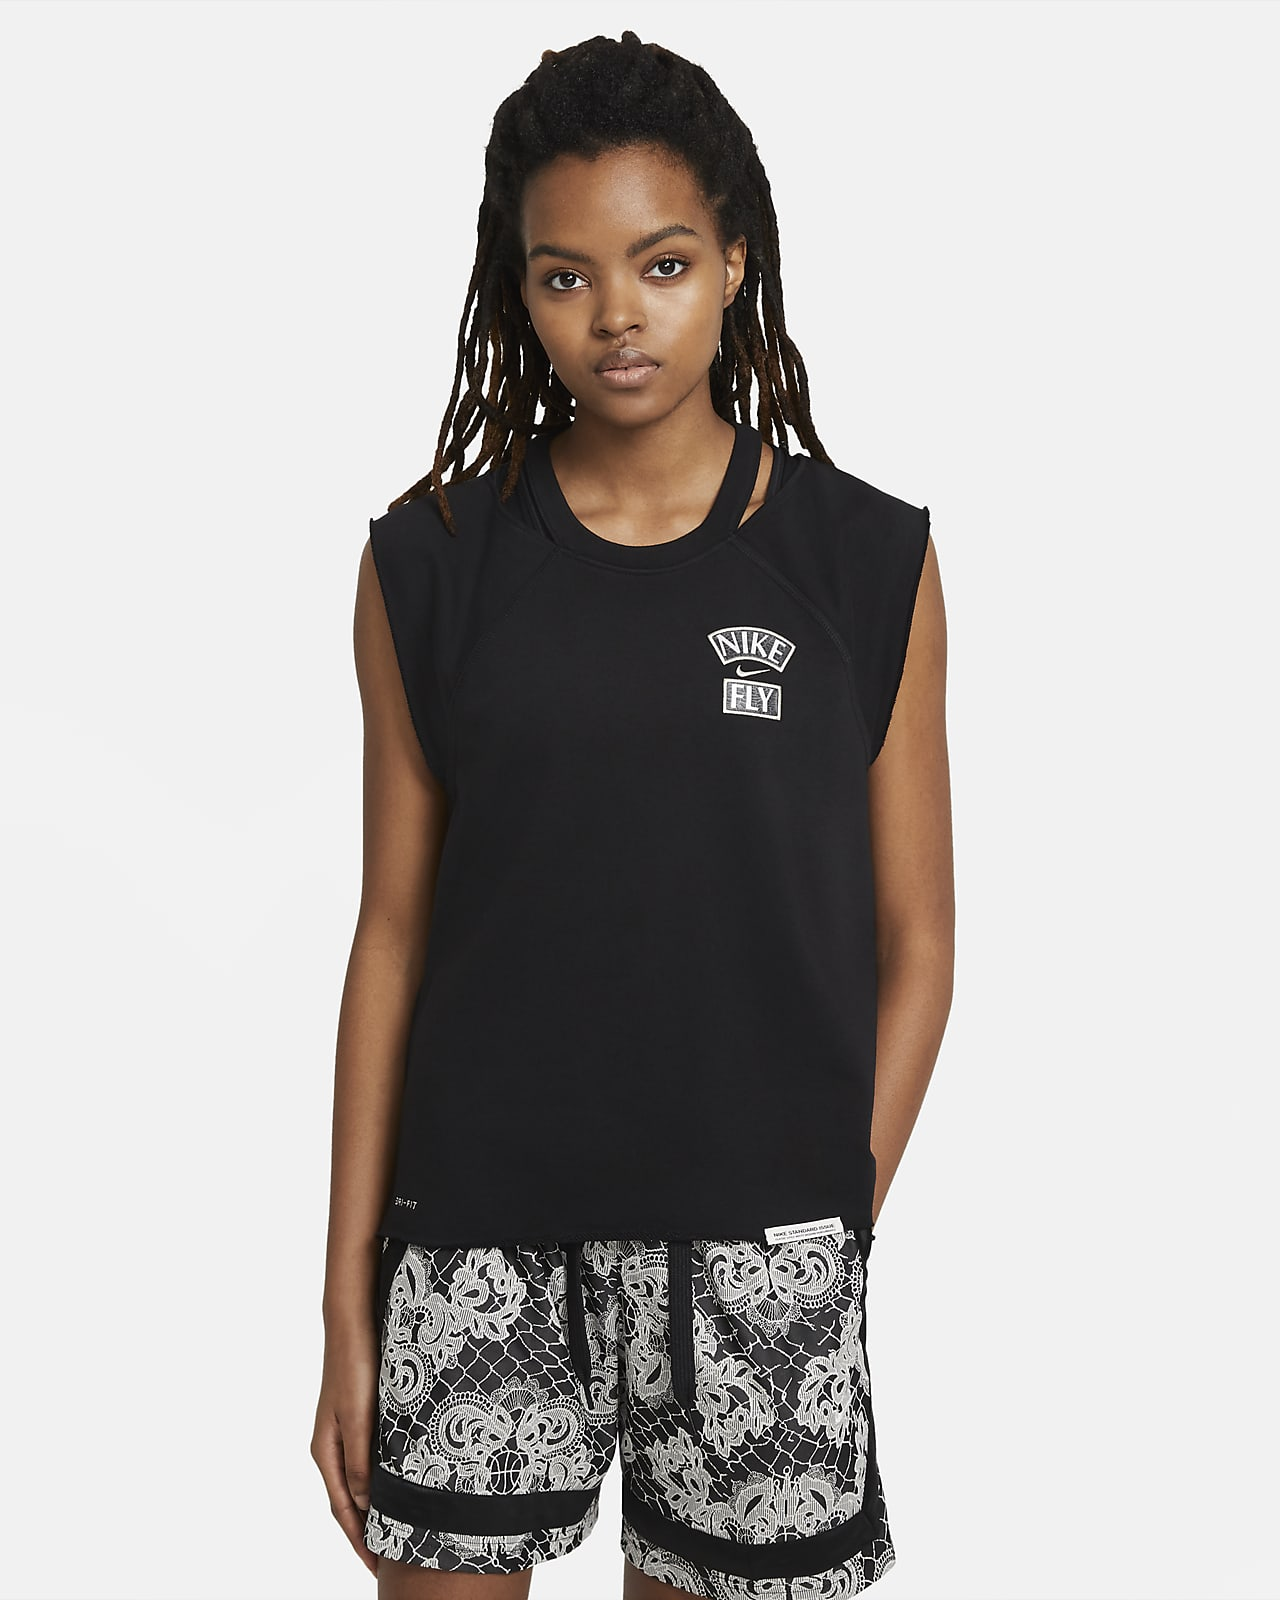 """Nike Standard Issue """"Queen of Courts"""" Women's Basketball Top"""